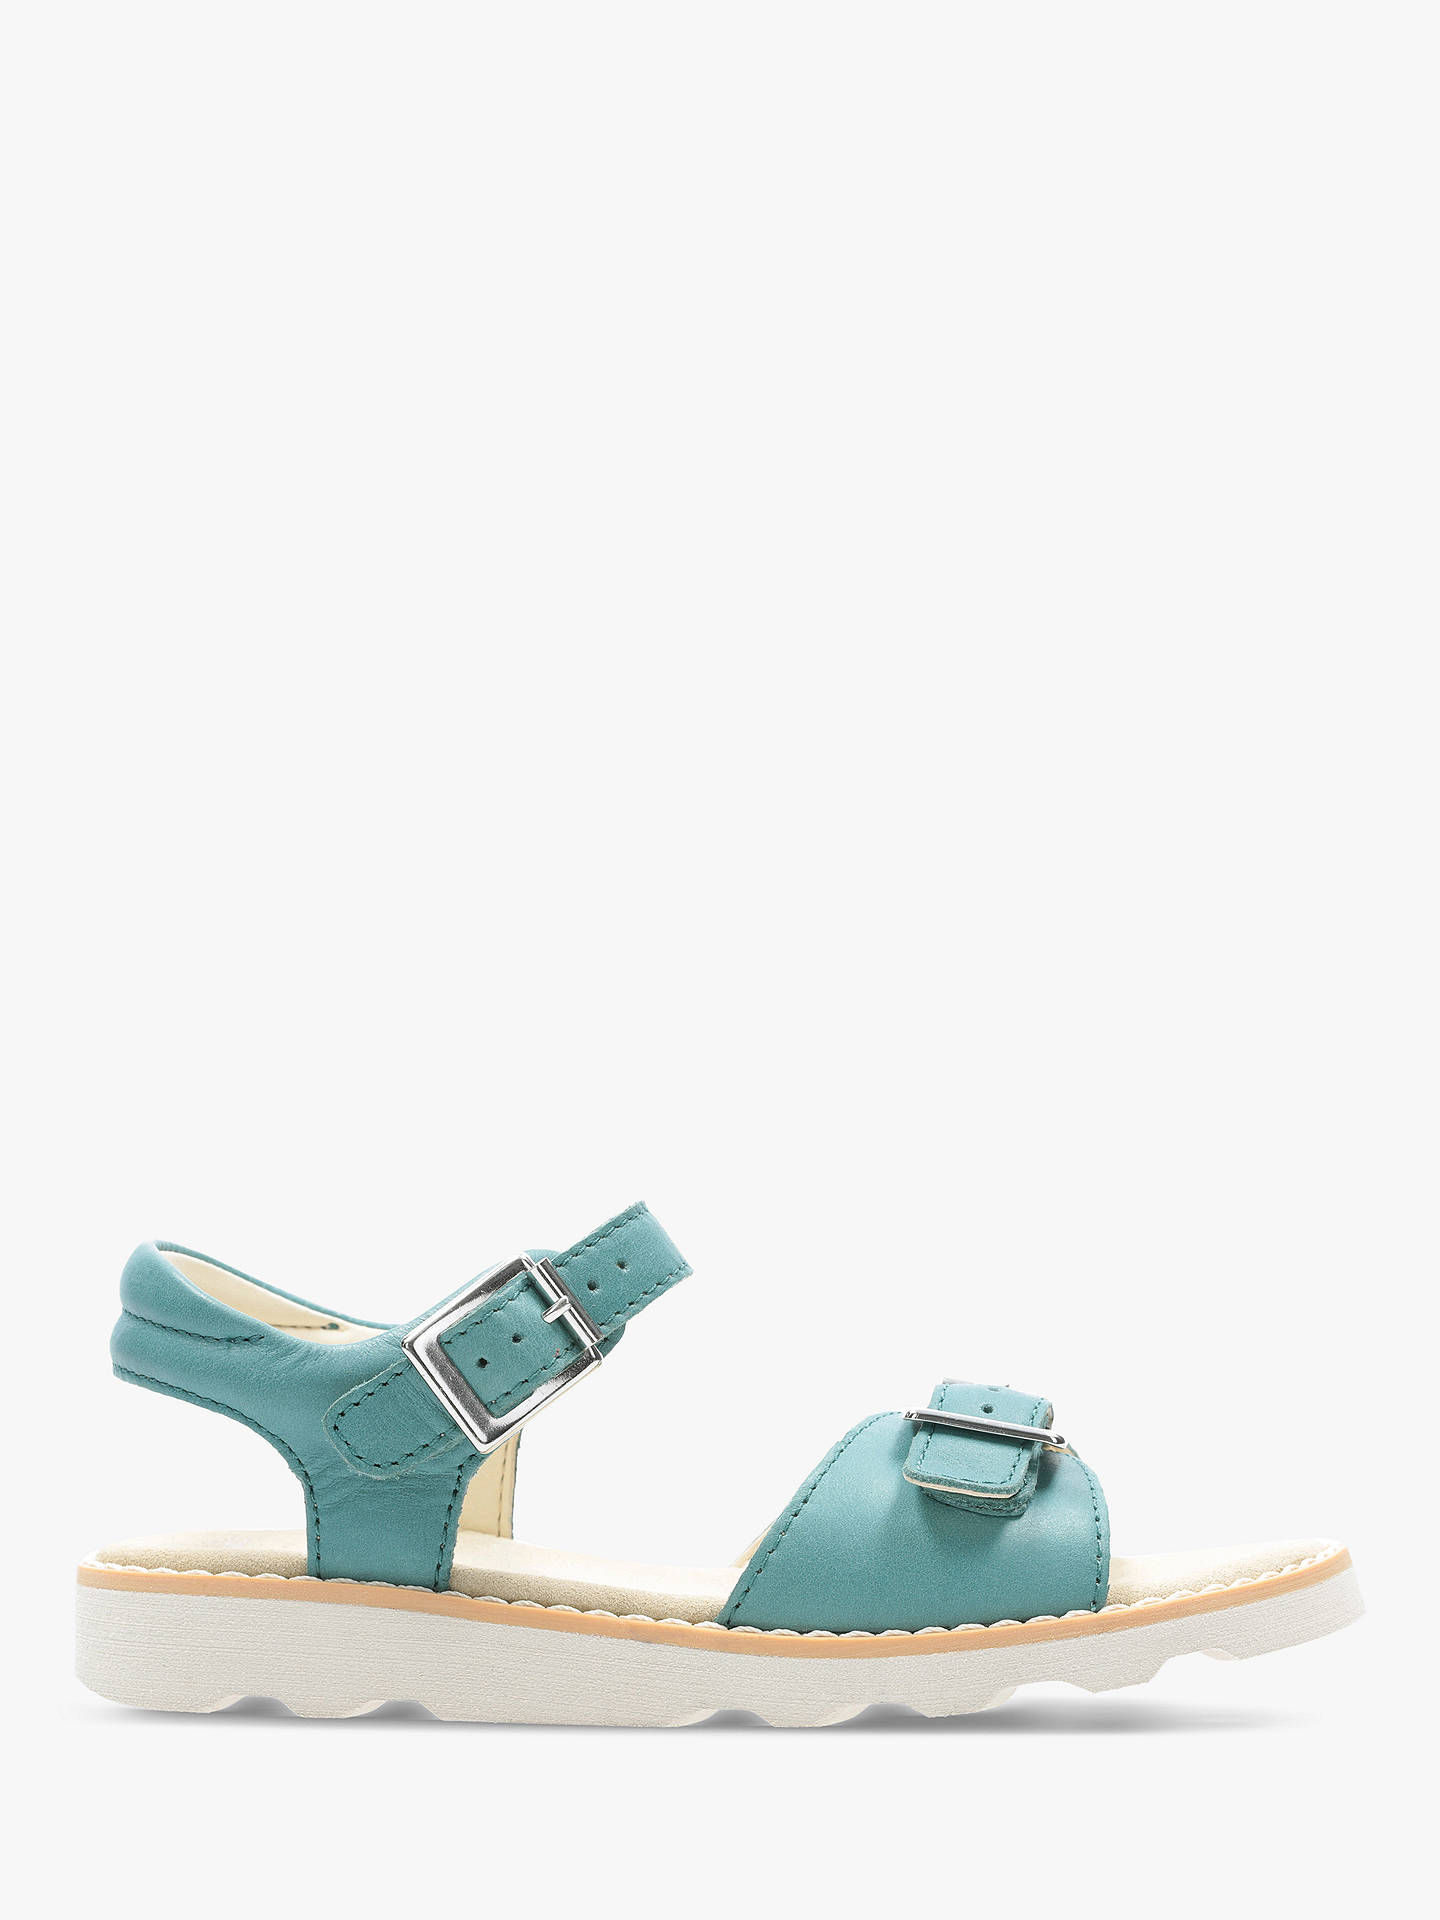 ef371098e0aa8 Buy Clarks Children's Crown Bloom Sandals, Teal, 13F Jnr Online at  johnlewis. ...